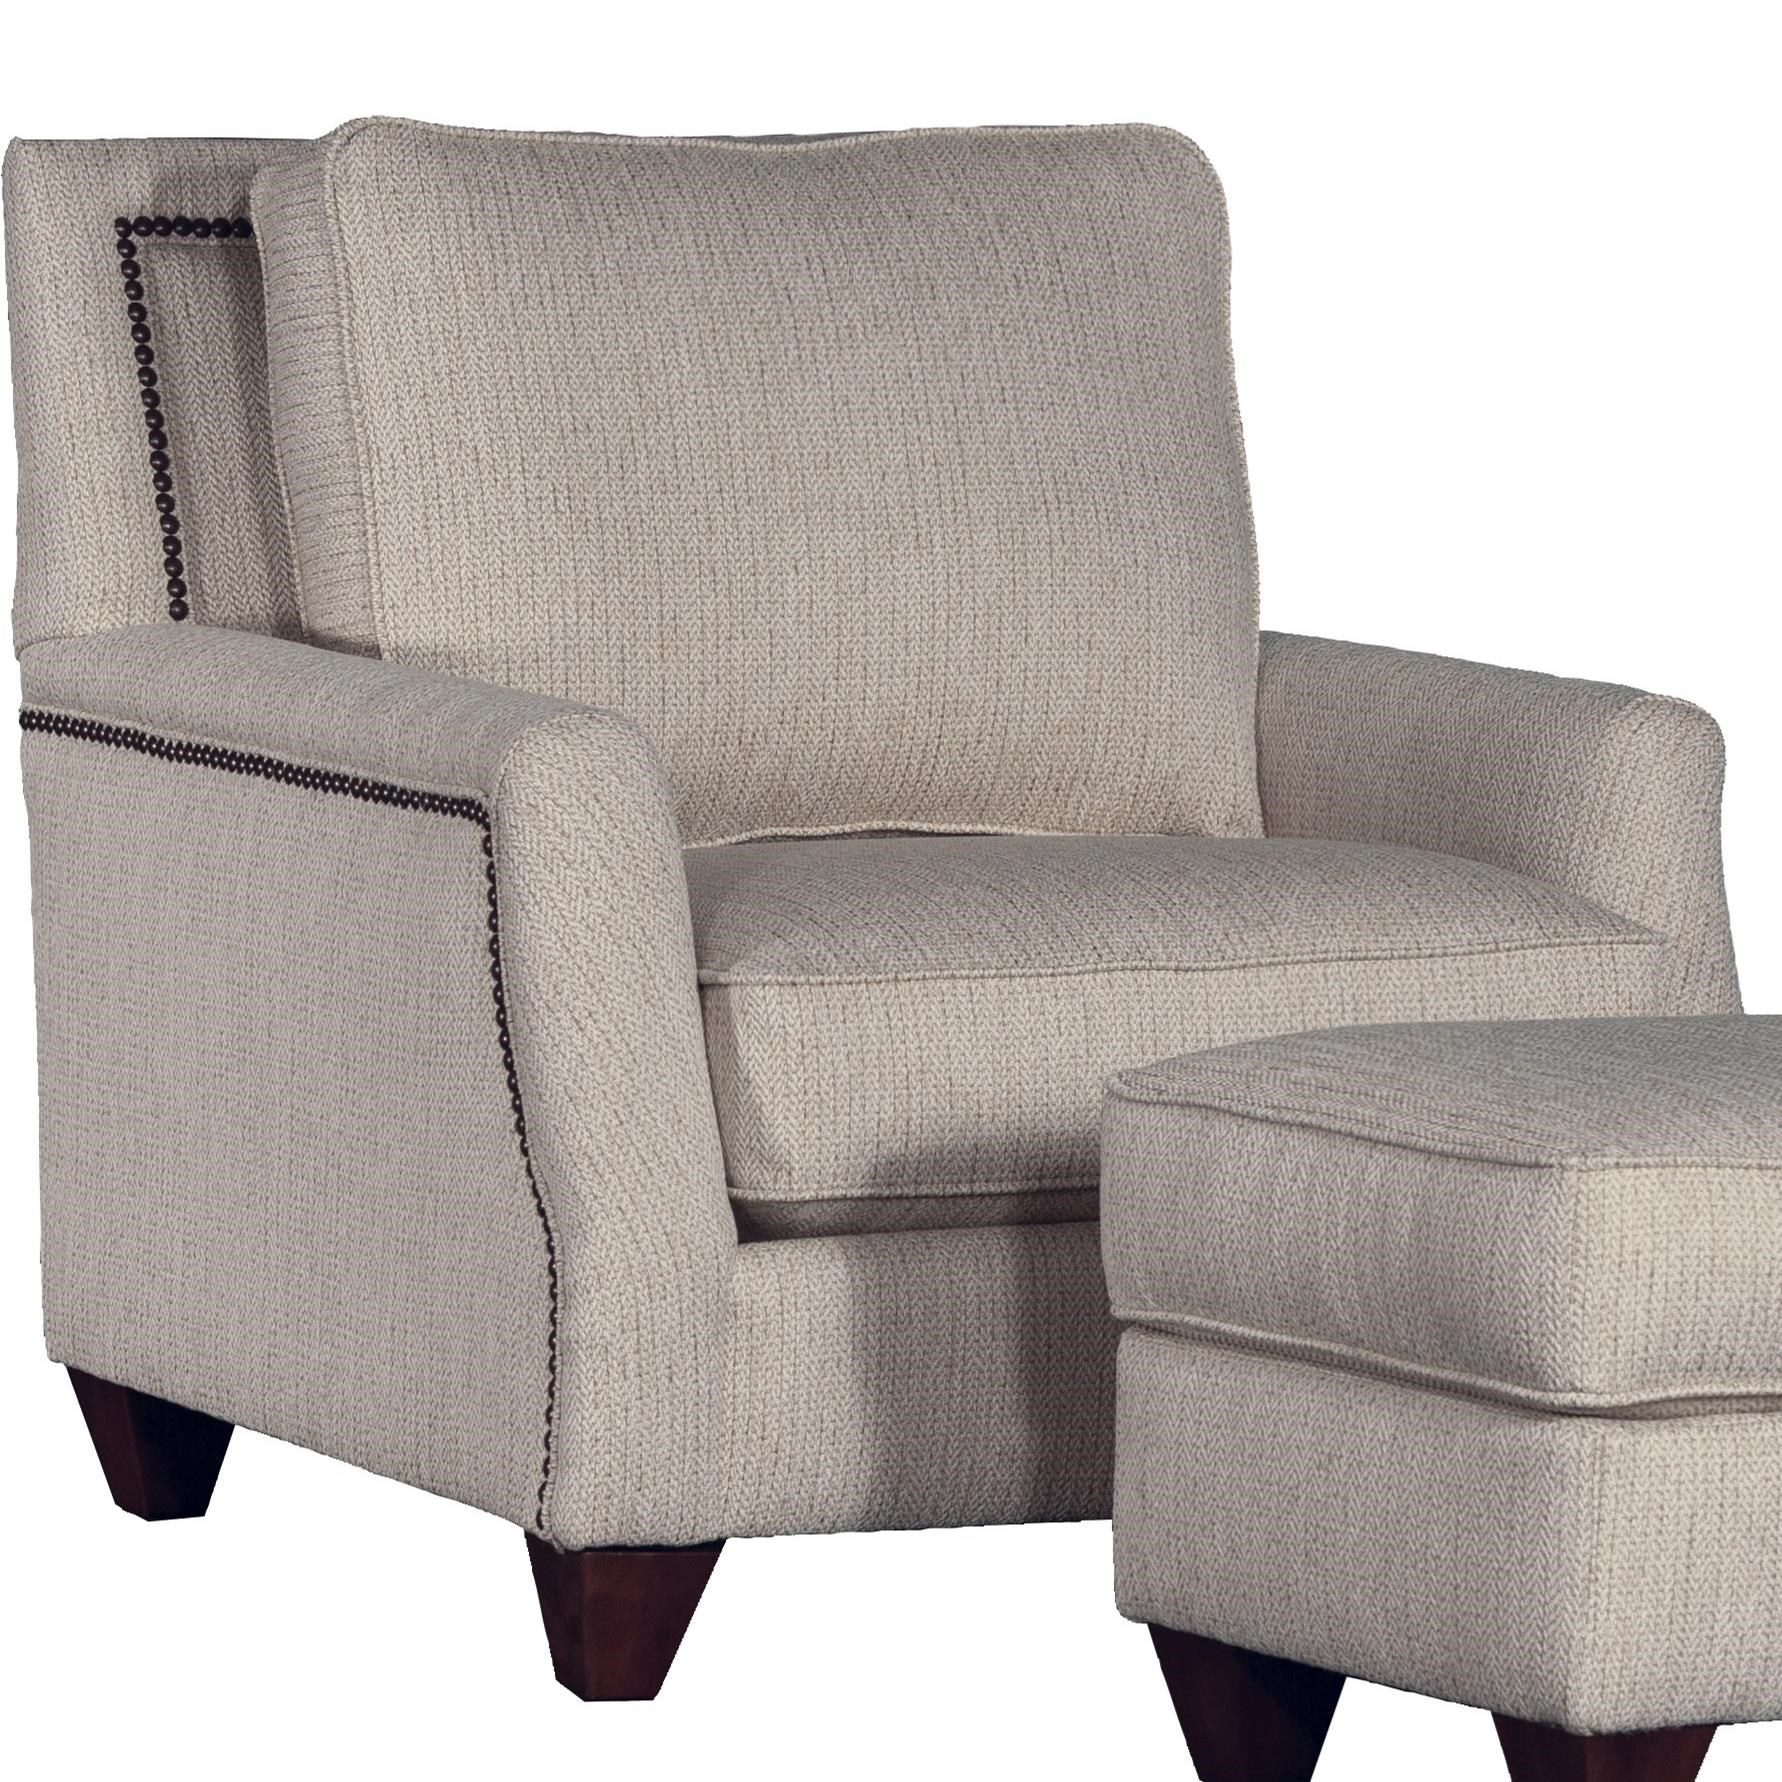 6200 Chair by Mayo at Wilcox Furniture